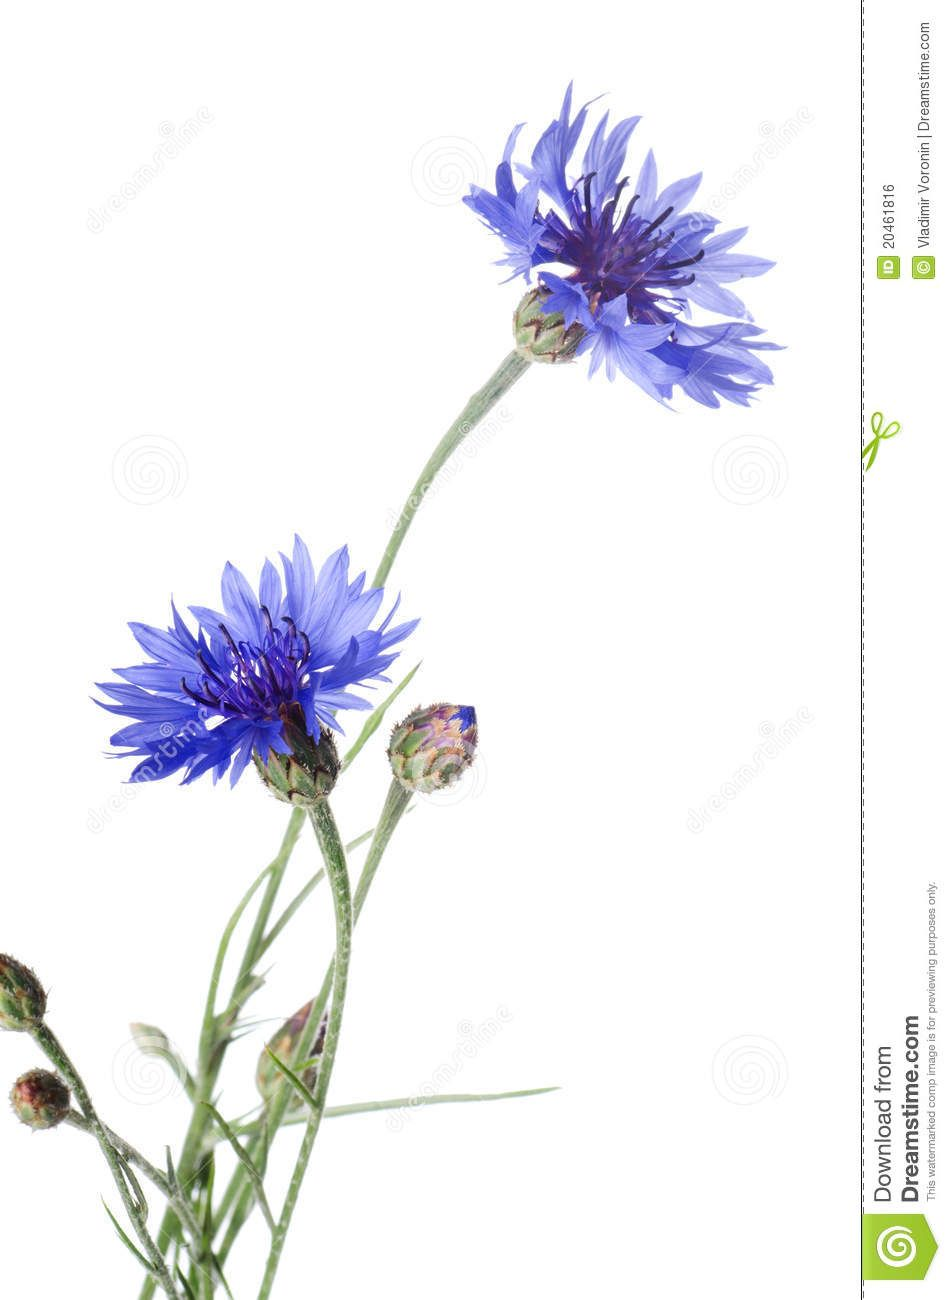 Beautiful Blue Cornflower Download From Over 59 Million High Quality Stock Photos Images Vec Watercolor Flowers Paintings Flower Painting Floral Watercolor